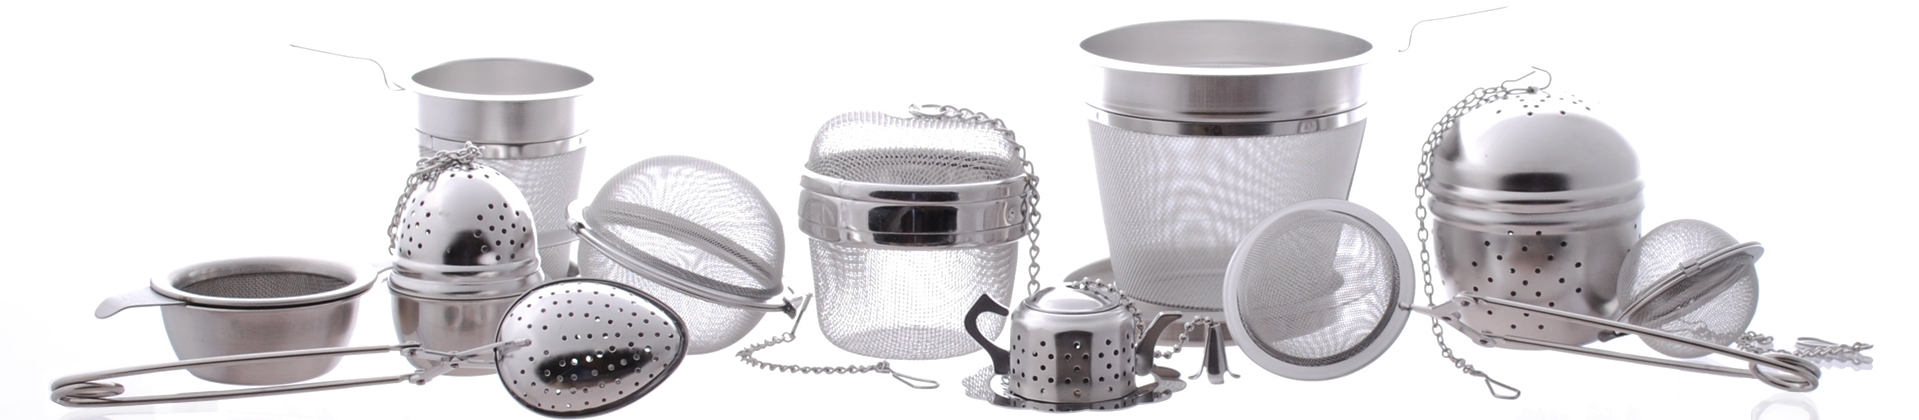 Tea Infusers, Strainers & Filters - Ronnefeldt